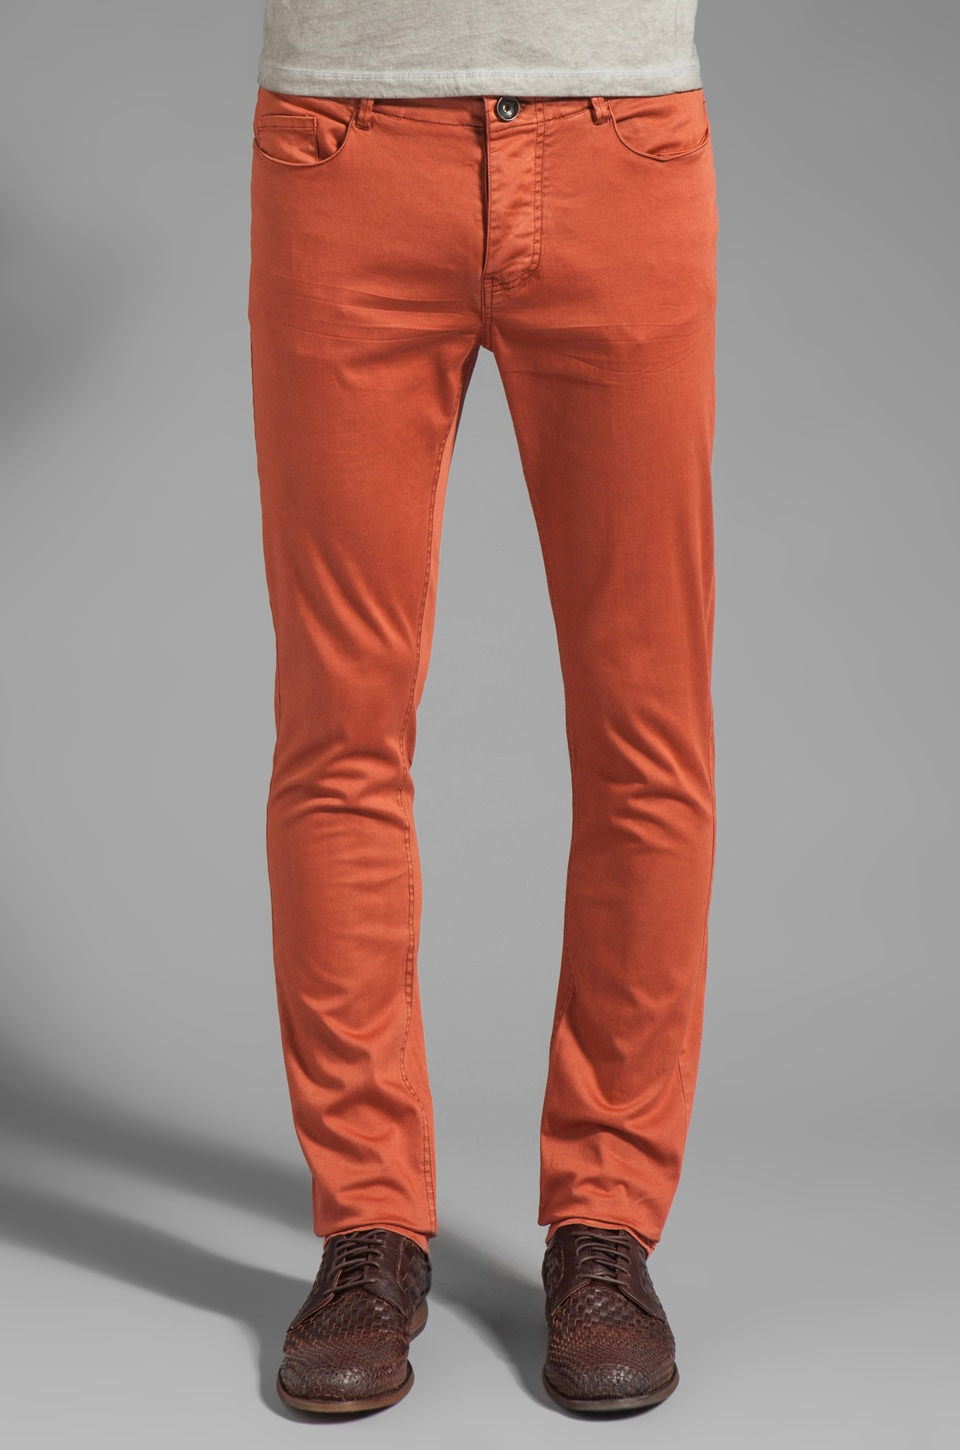 Rogue Western Pocket Chino Pant in Habiscus